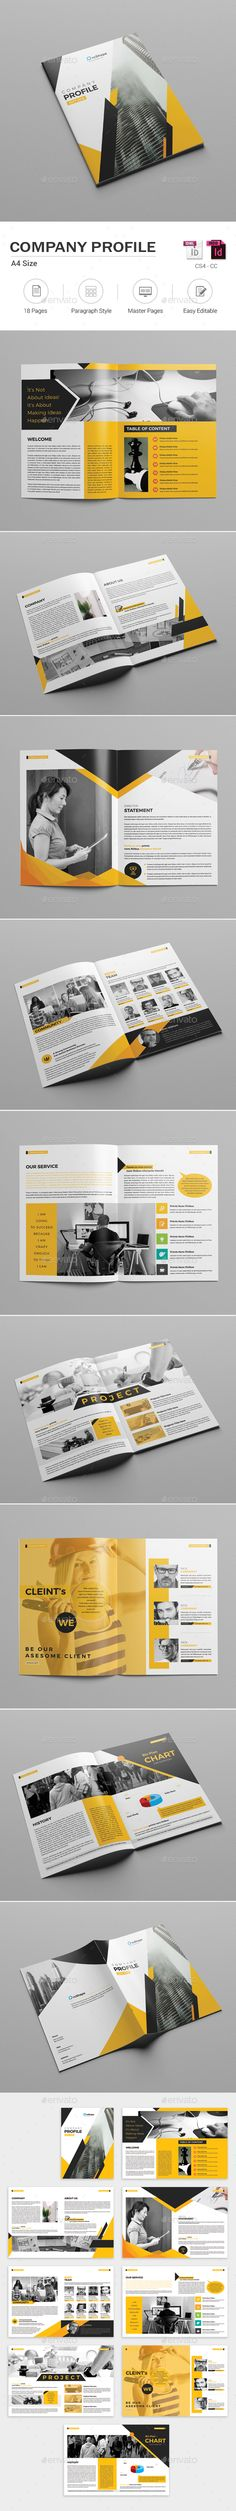 Company #Profile - Corporate #Brochures Download here: https://graphicriver.net/item/company-profile/19560552?ref=alena994